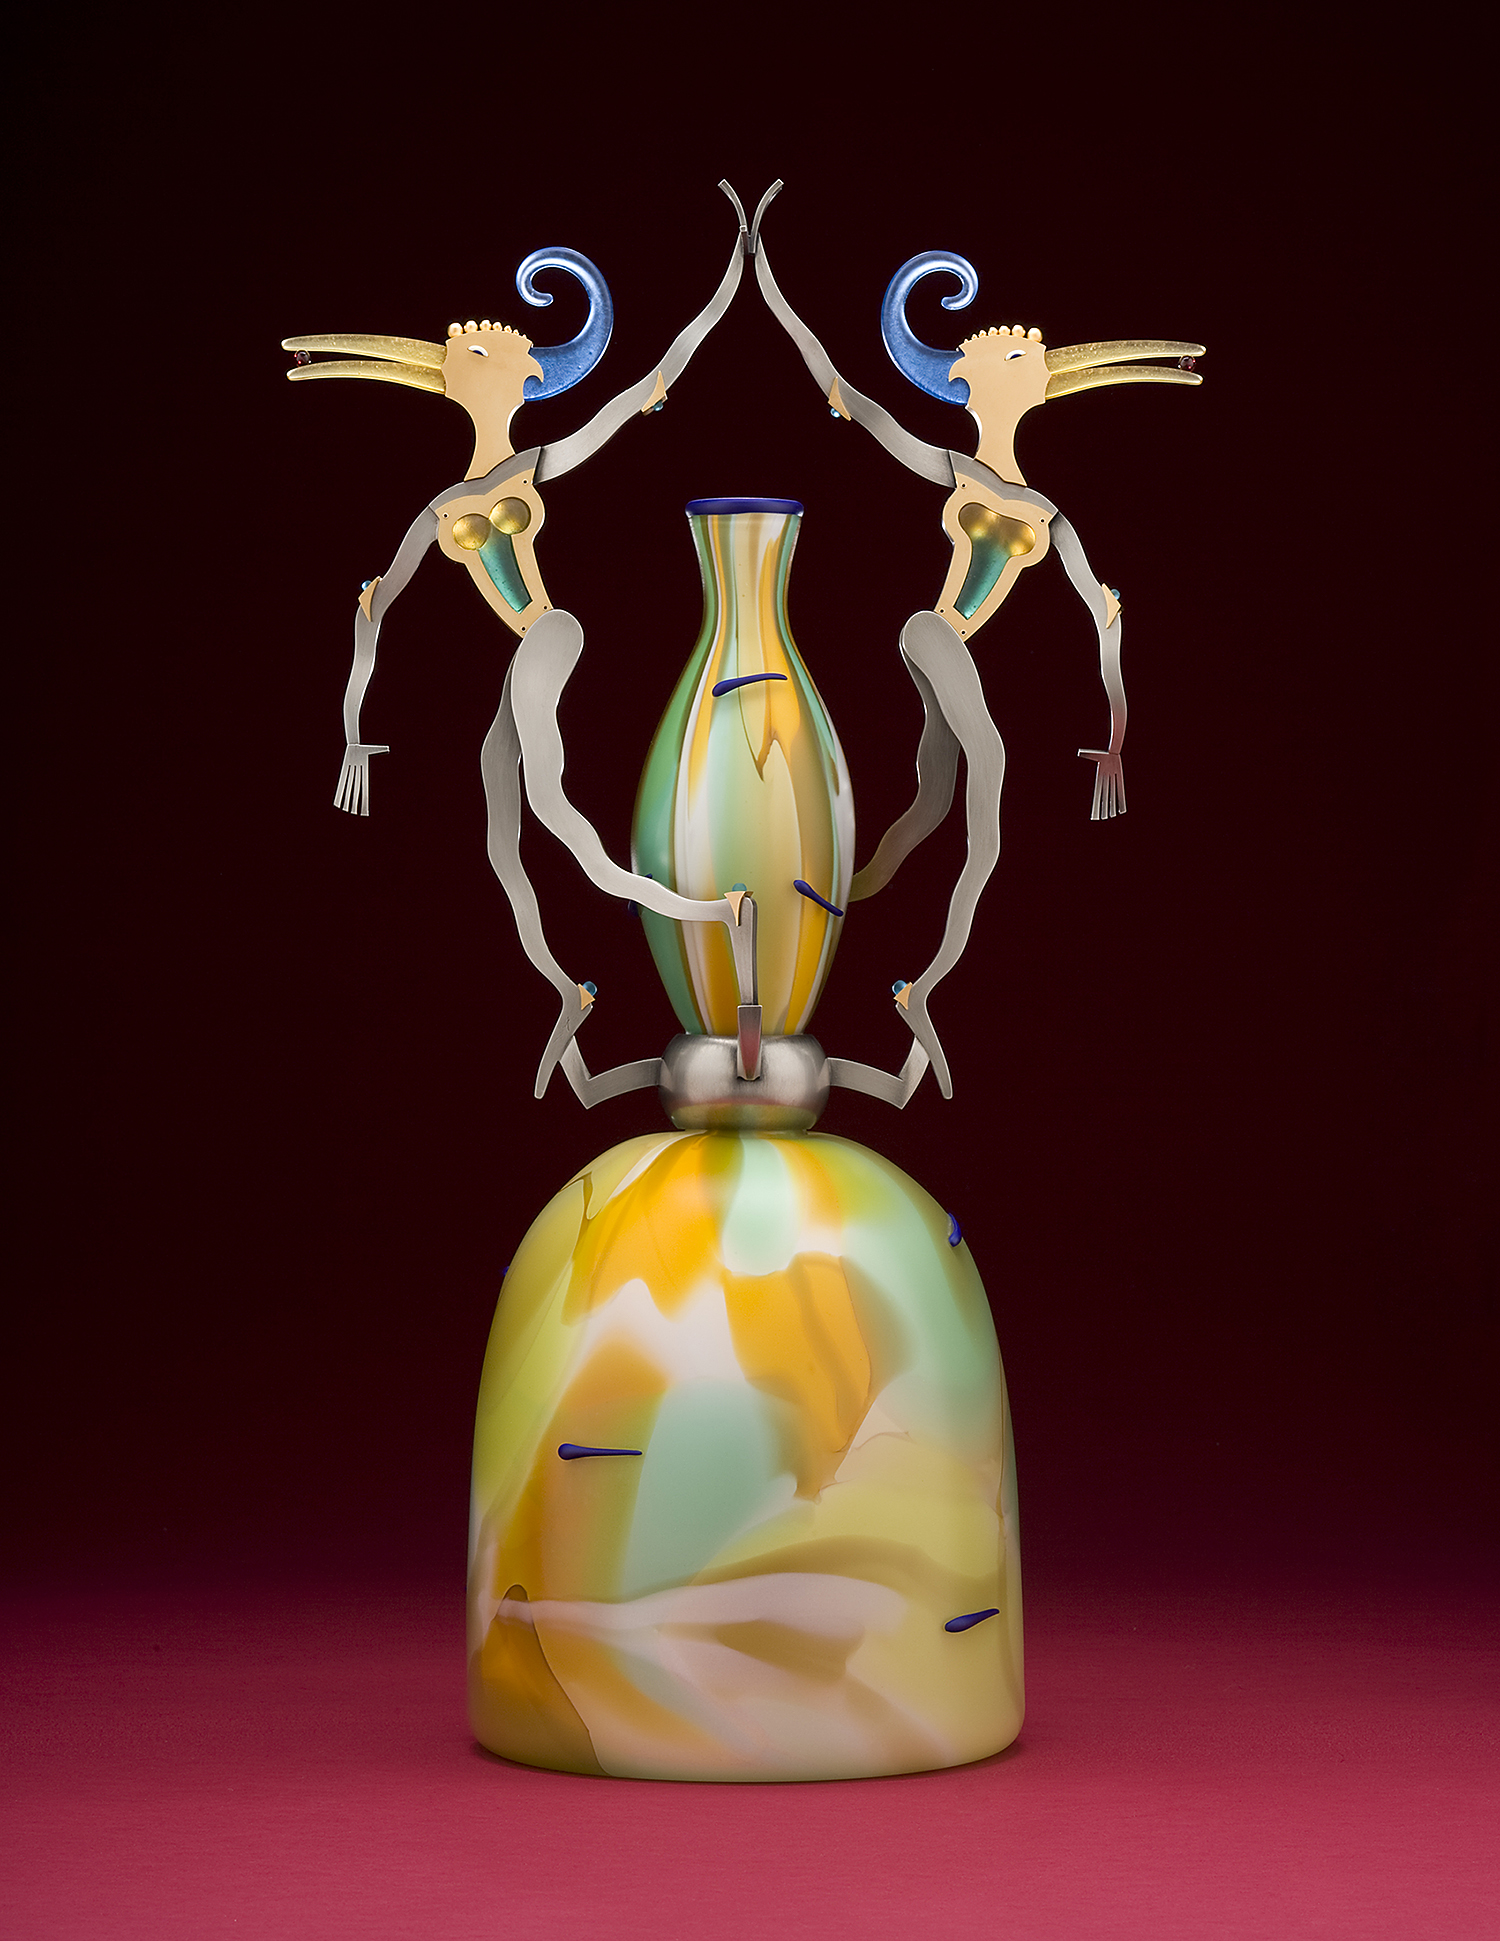 Pretenders   2008. Blown glass, nickel and gold-plated bronze, pate de verre, Vitrolite. 25 x 14½ x 9""